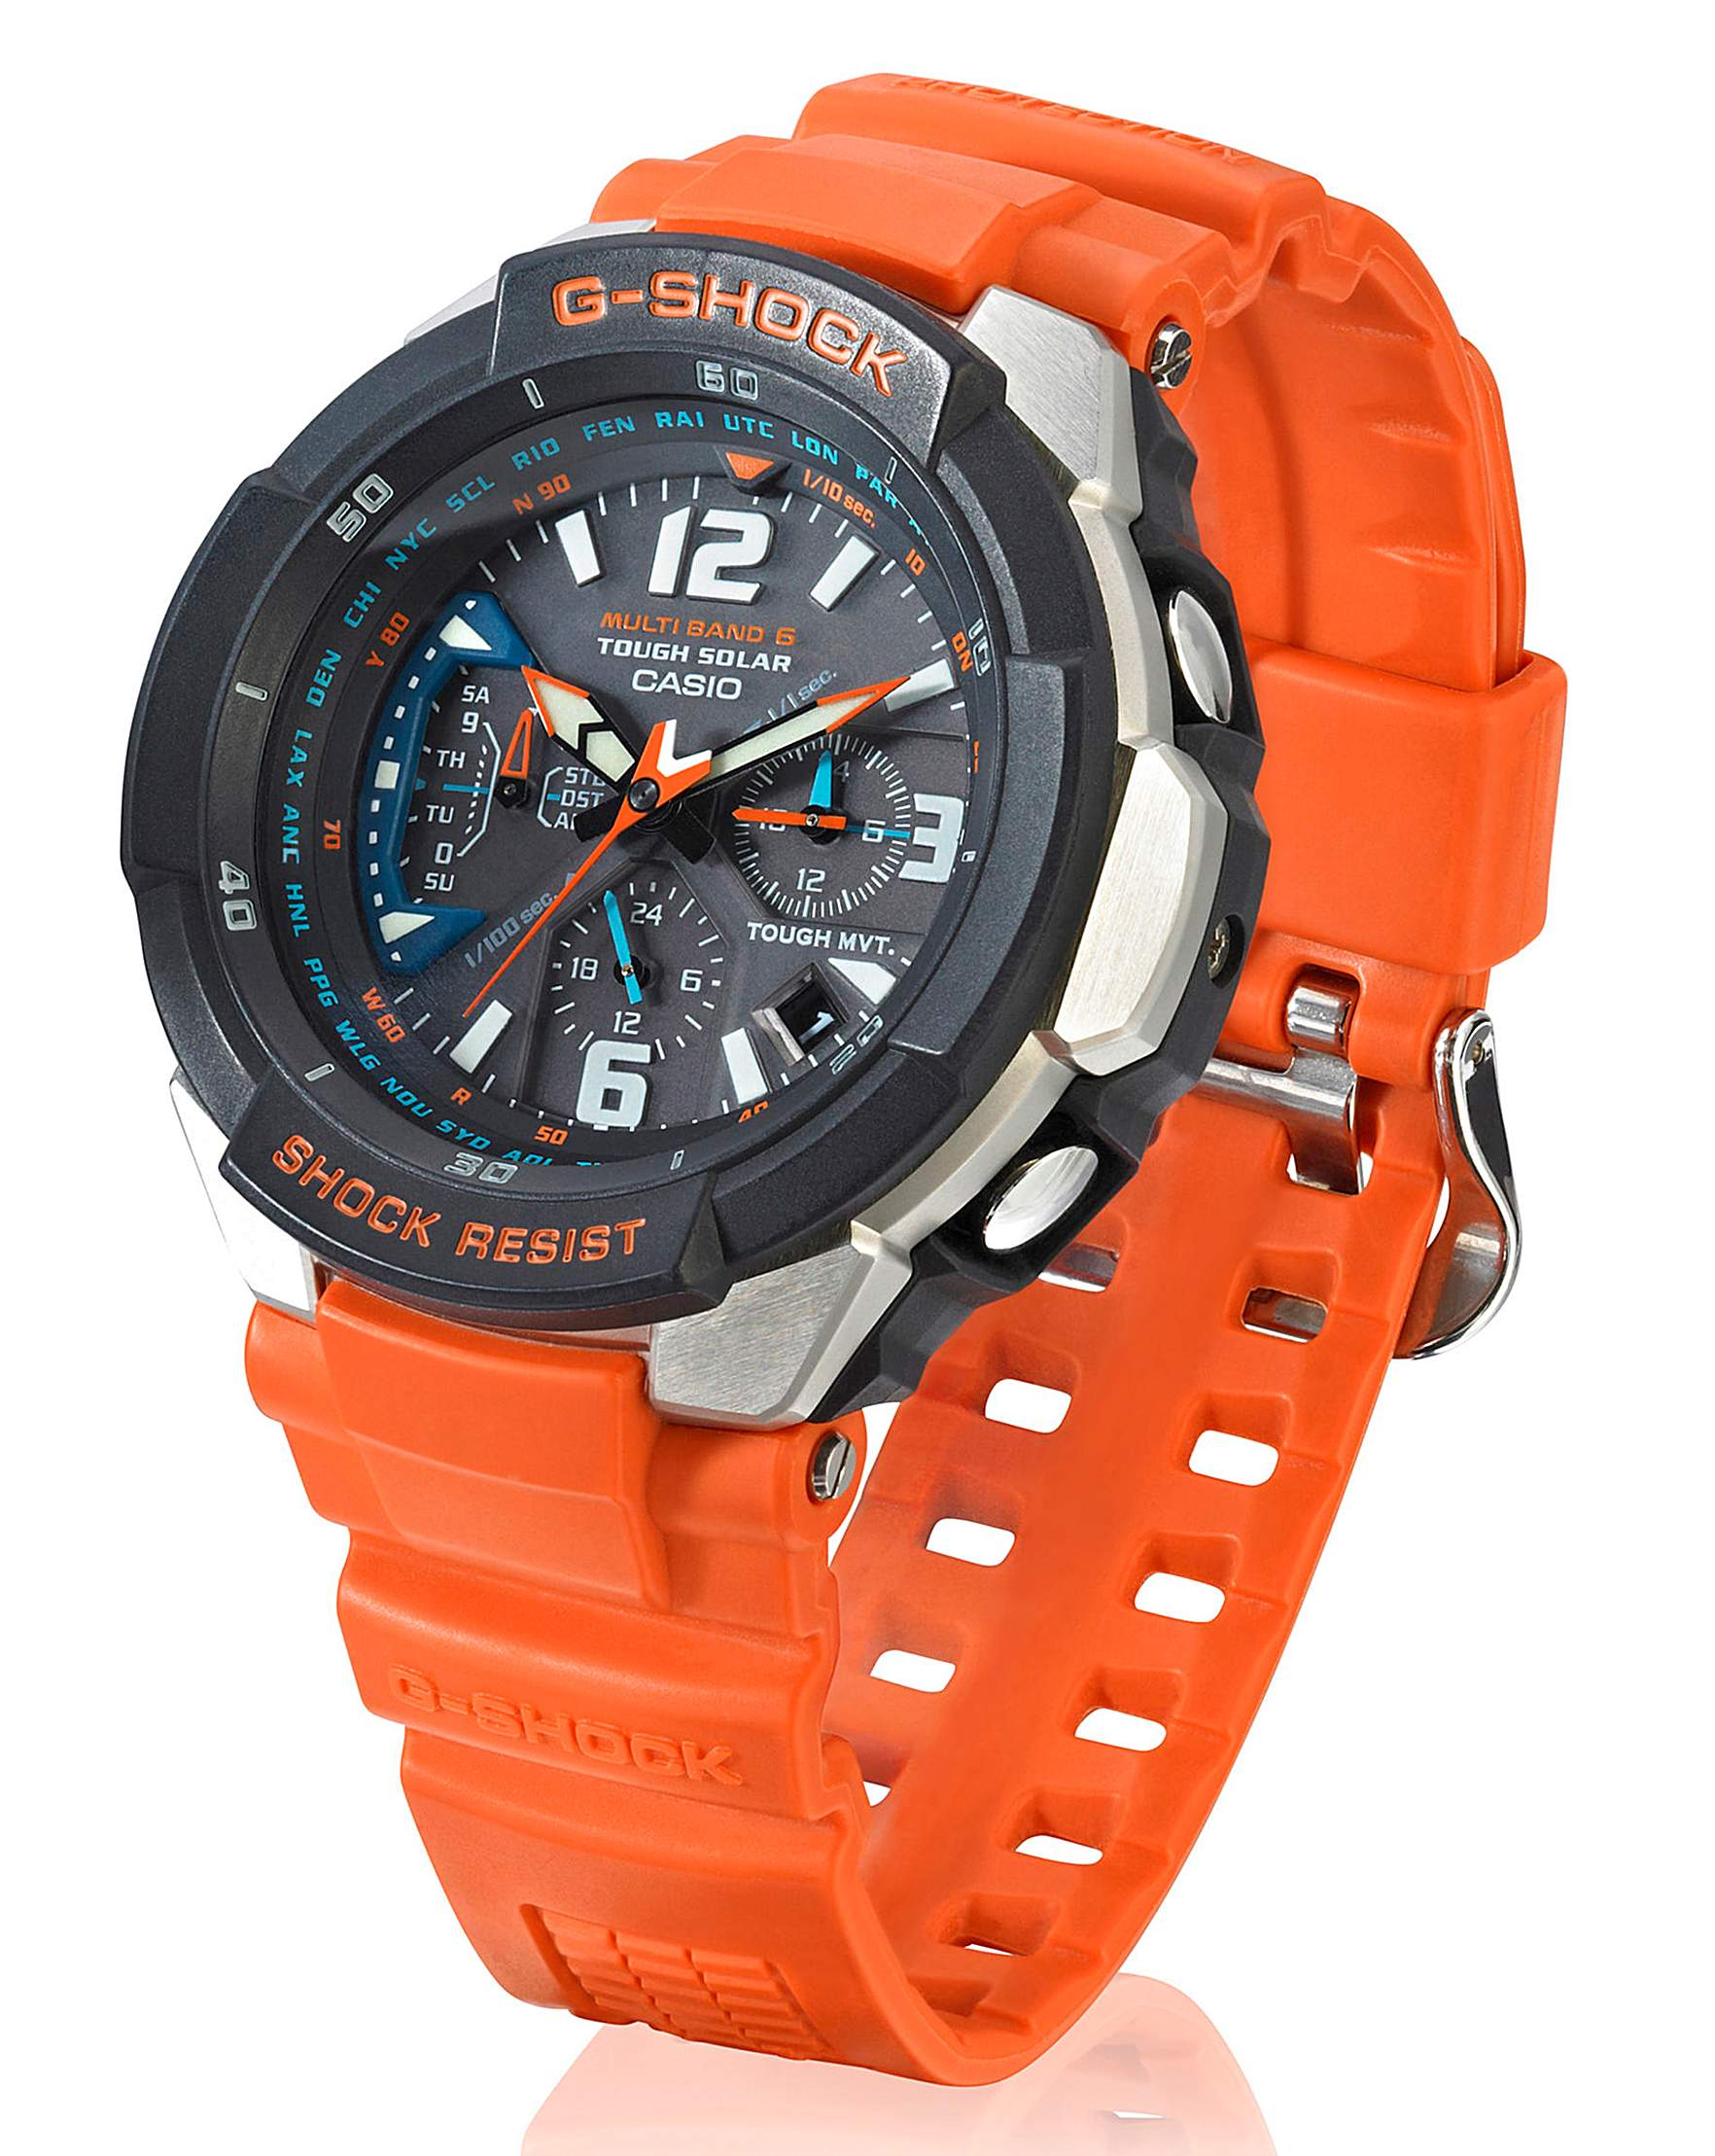 limited black burton news with snowboards mens by up collaboration teams third model series out shock edition for gshock g watches collab digital latest casio